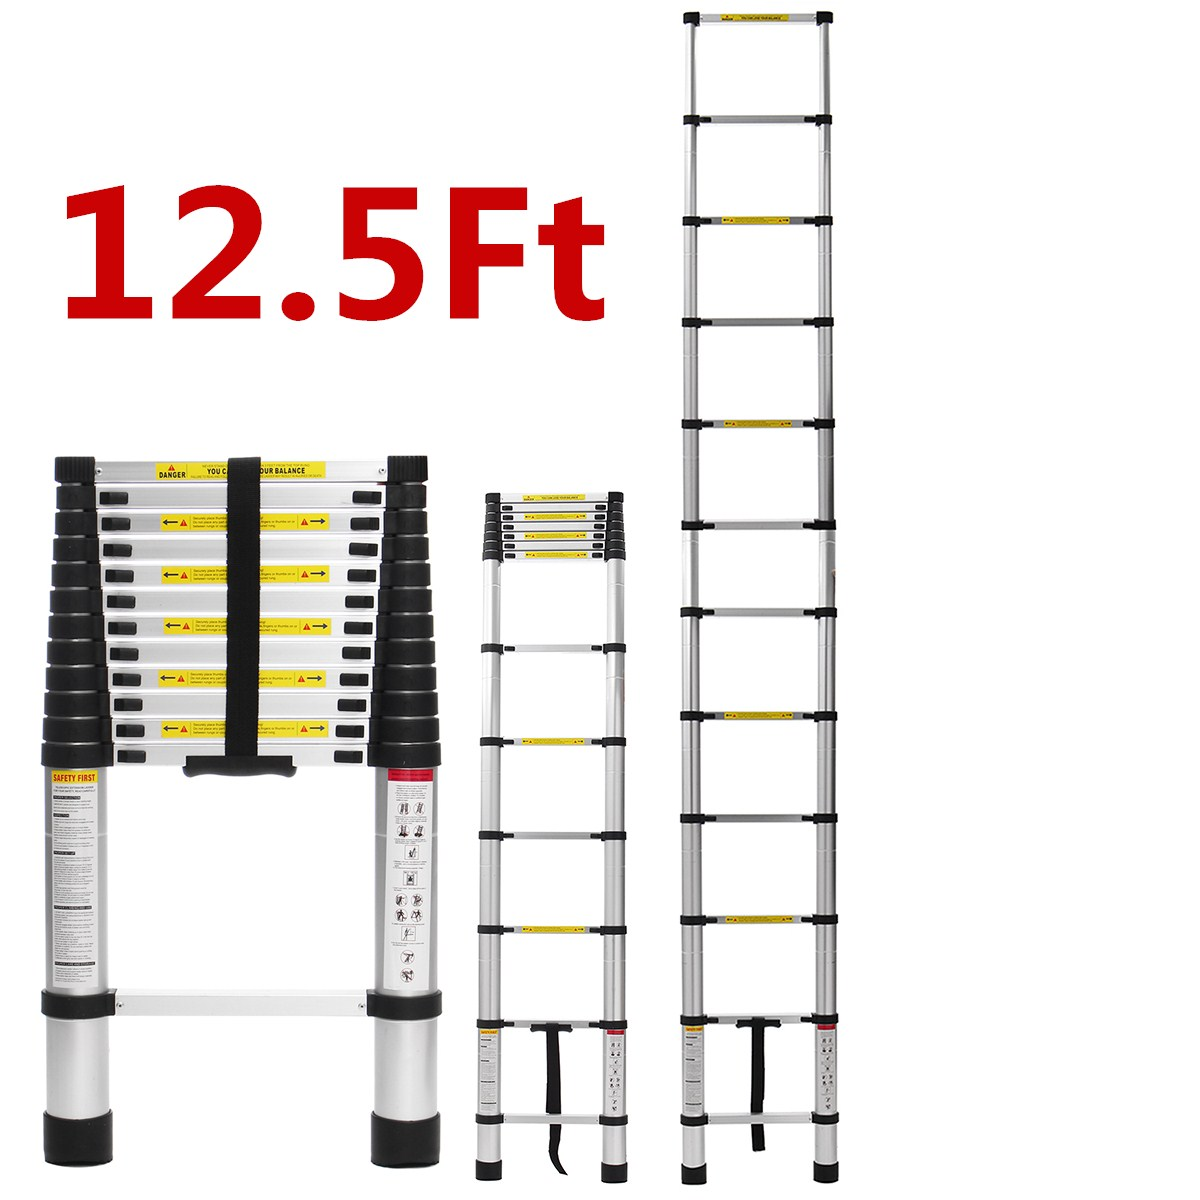 3.8m 12.5Ft Multifunctional Ladder Telescopic Alloy Aluminium Retractable Single Extension Ladder Foldable Drywall Tools Home